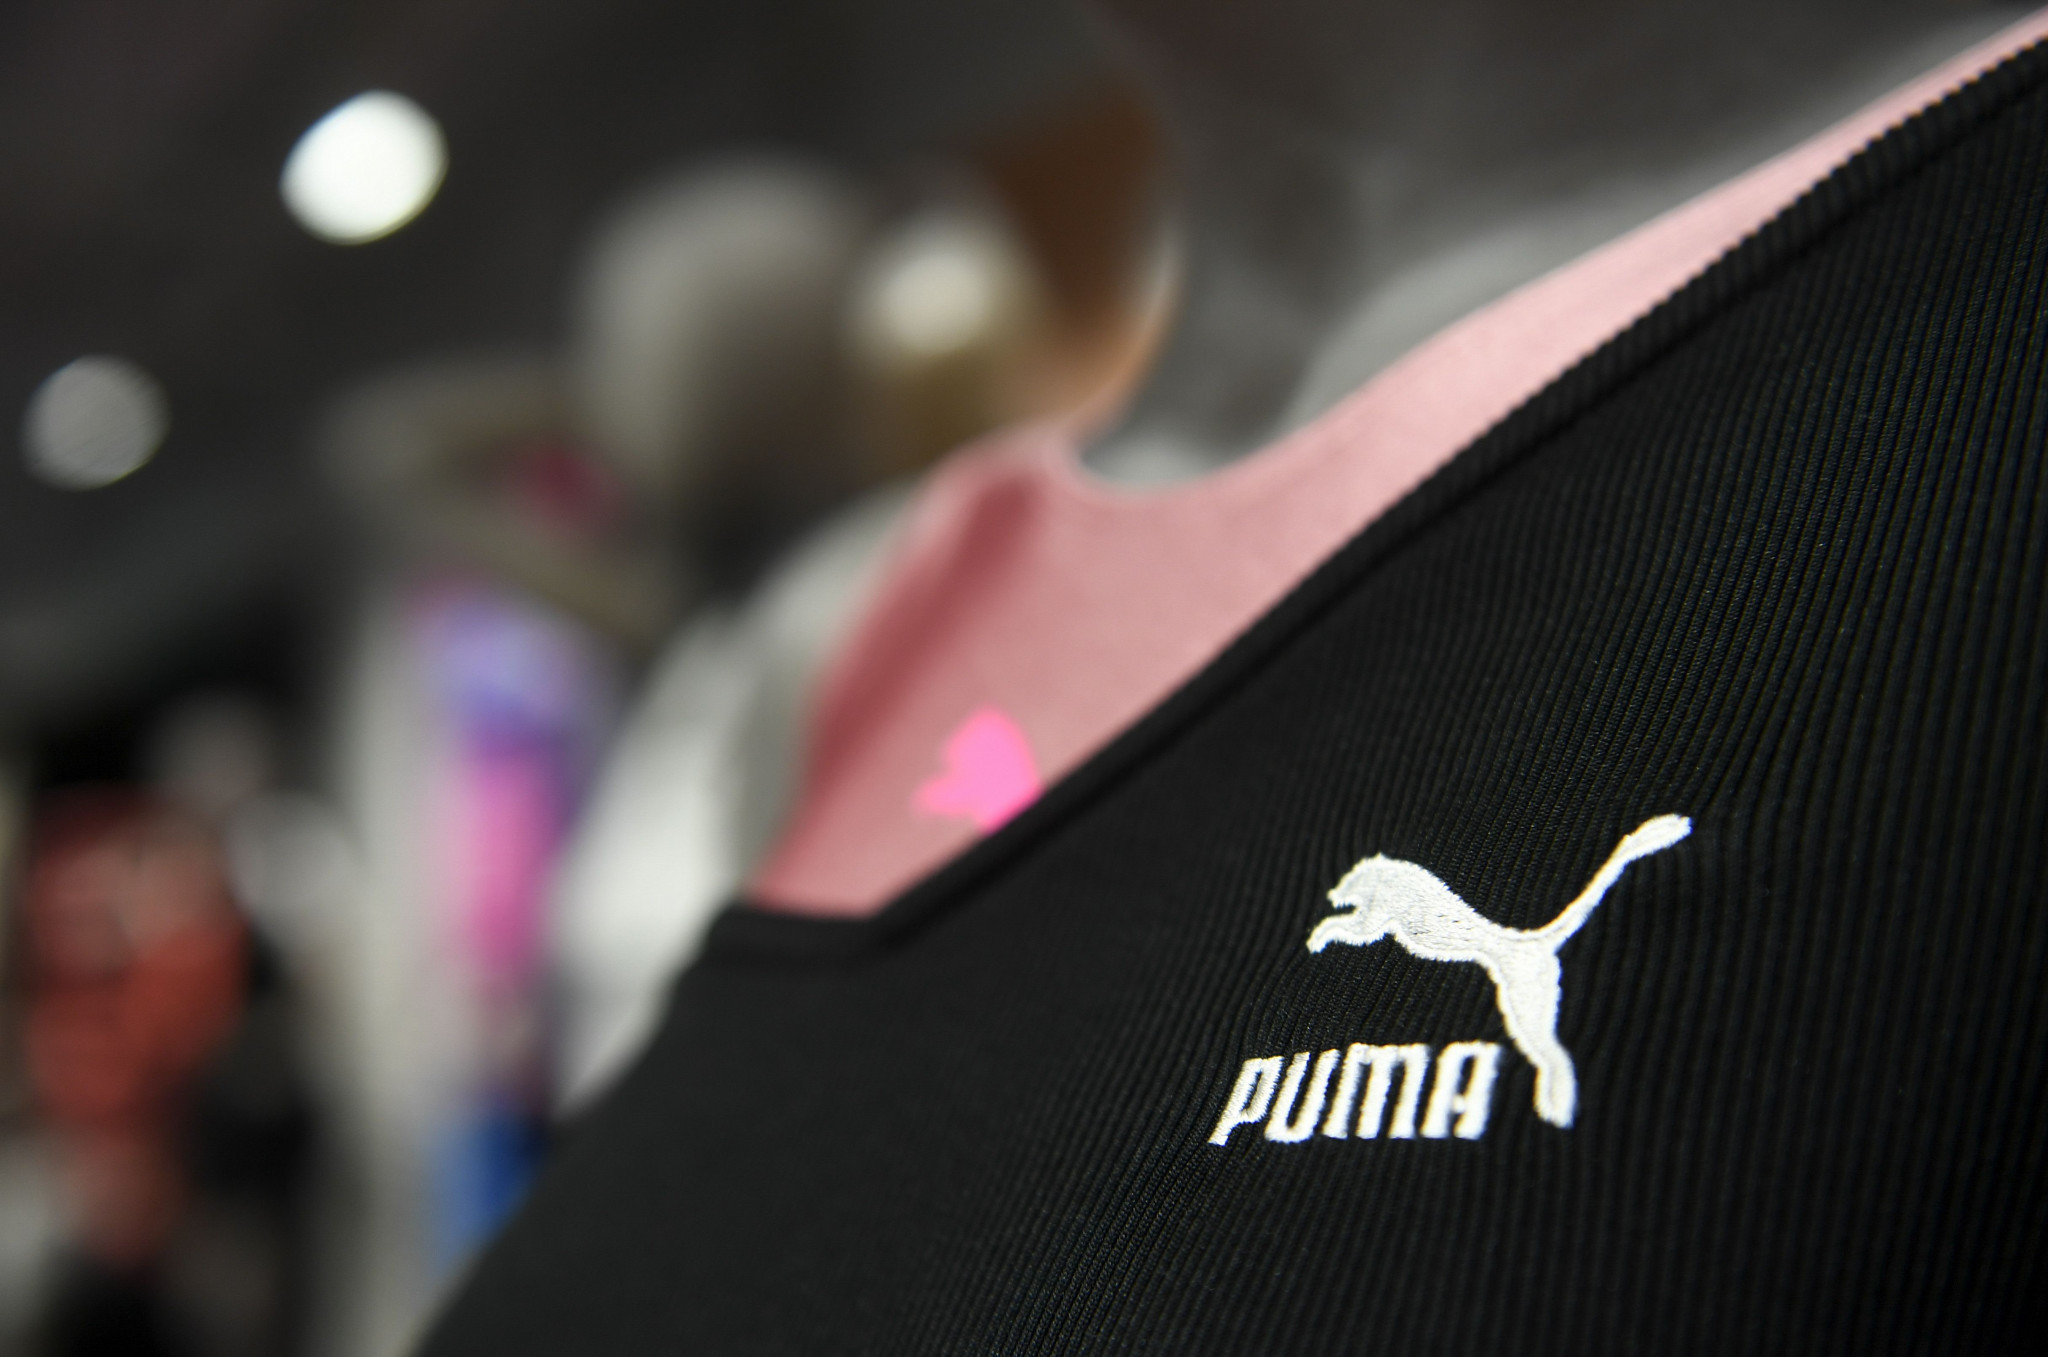 Puma lodged an application to trademark Puma Tokyo 2021 ©Getty Images